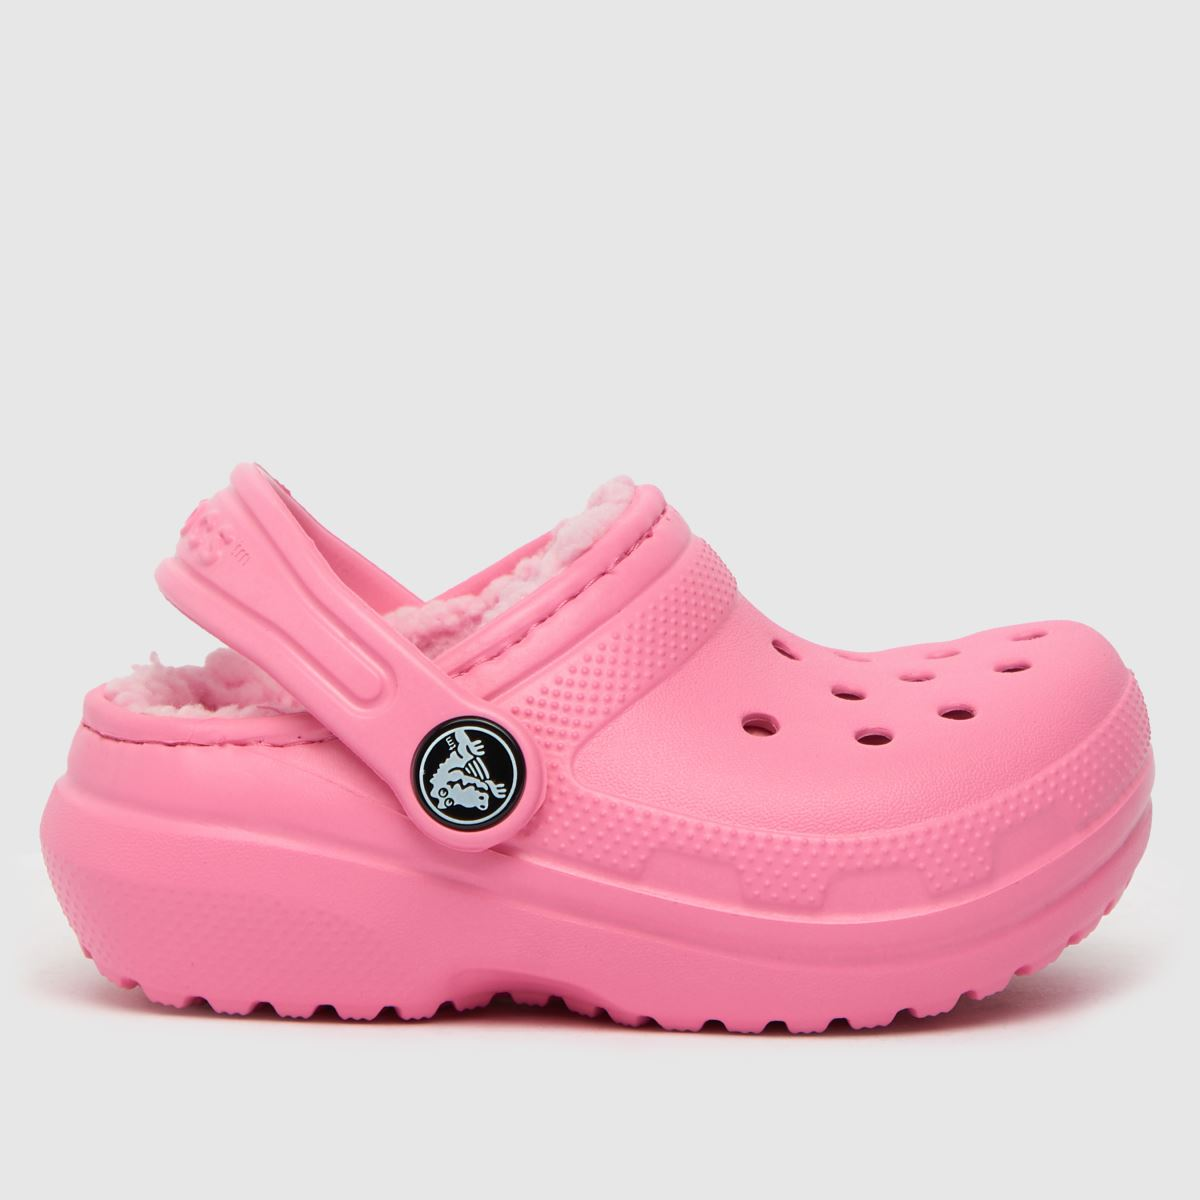 Crocs Pale Pink Classic Lined Clog Sandals Toddler